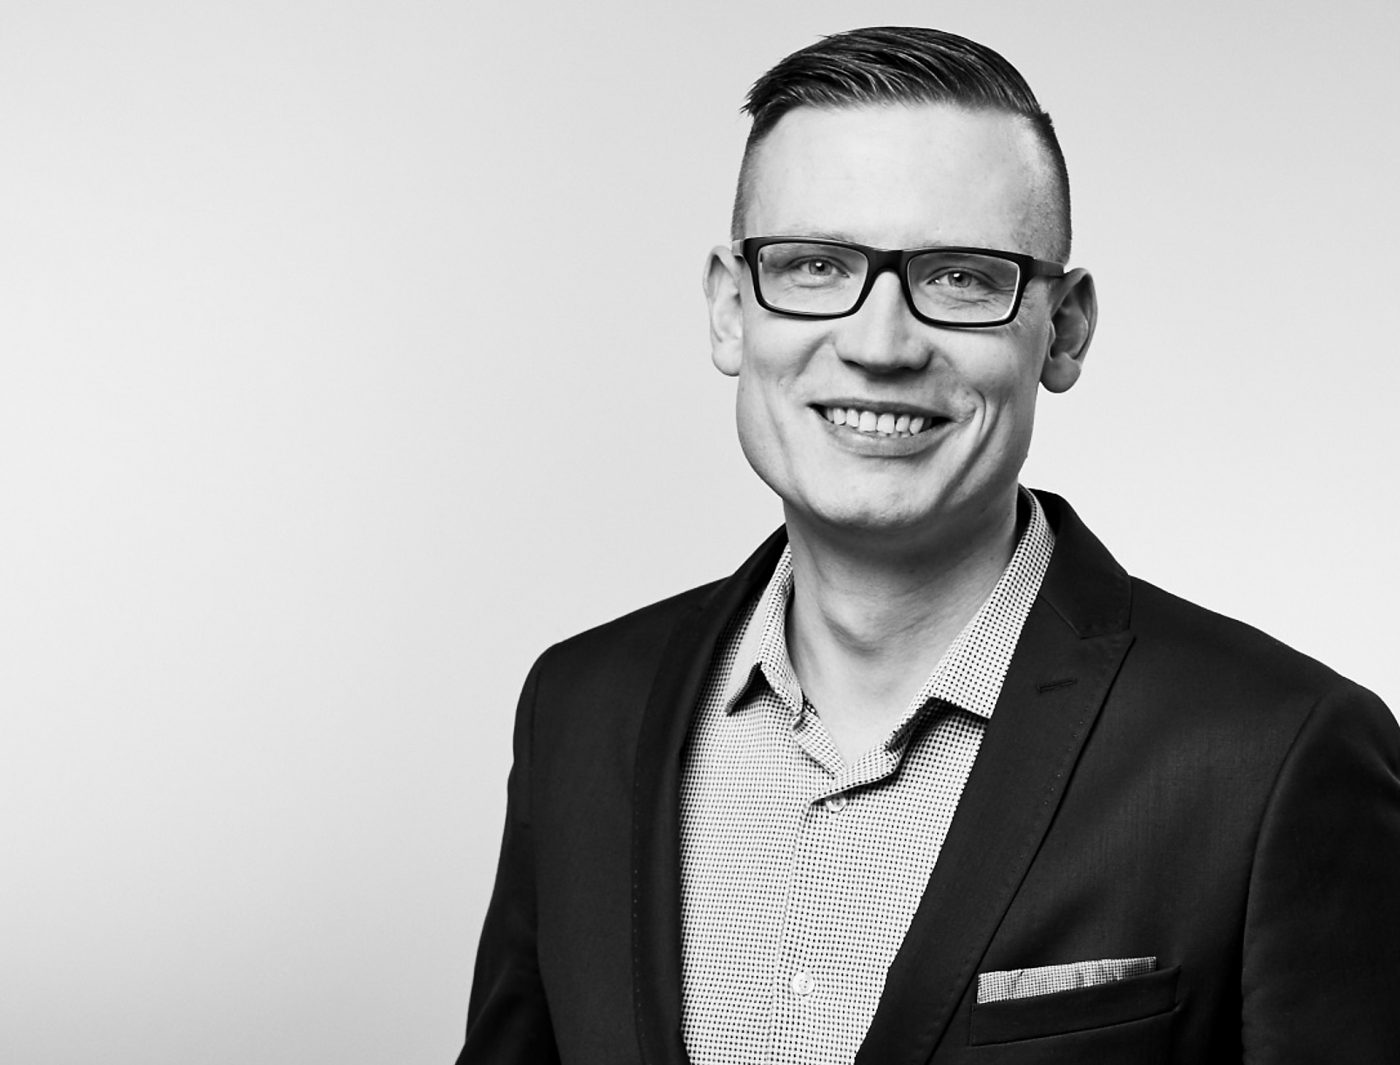 BUSINESSPORTRAIT, BEWERBUNGSFOTO, PORTRAITSHOOTING, HEADSHOT